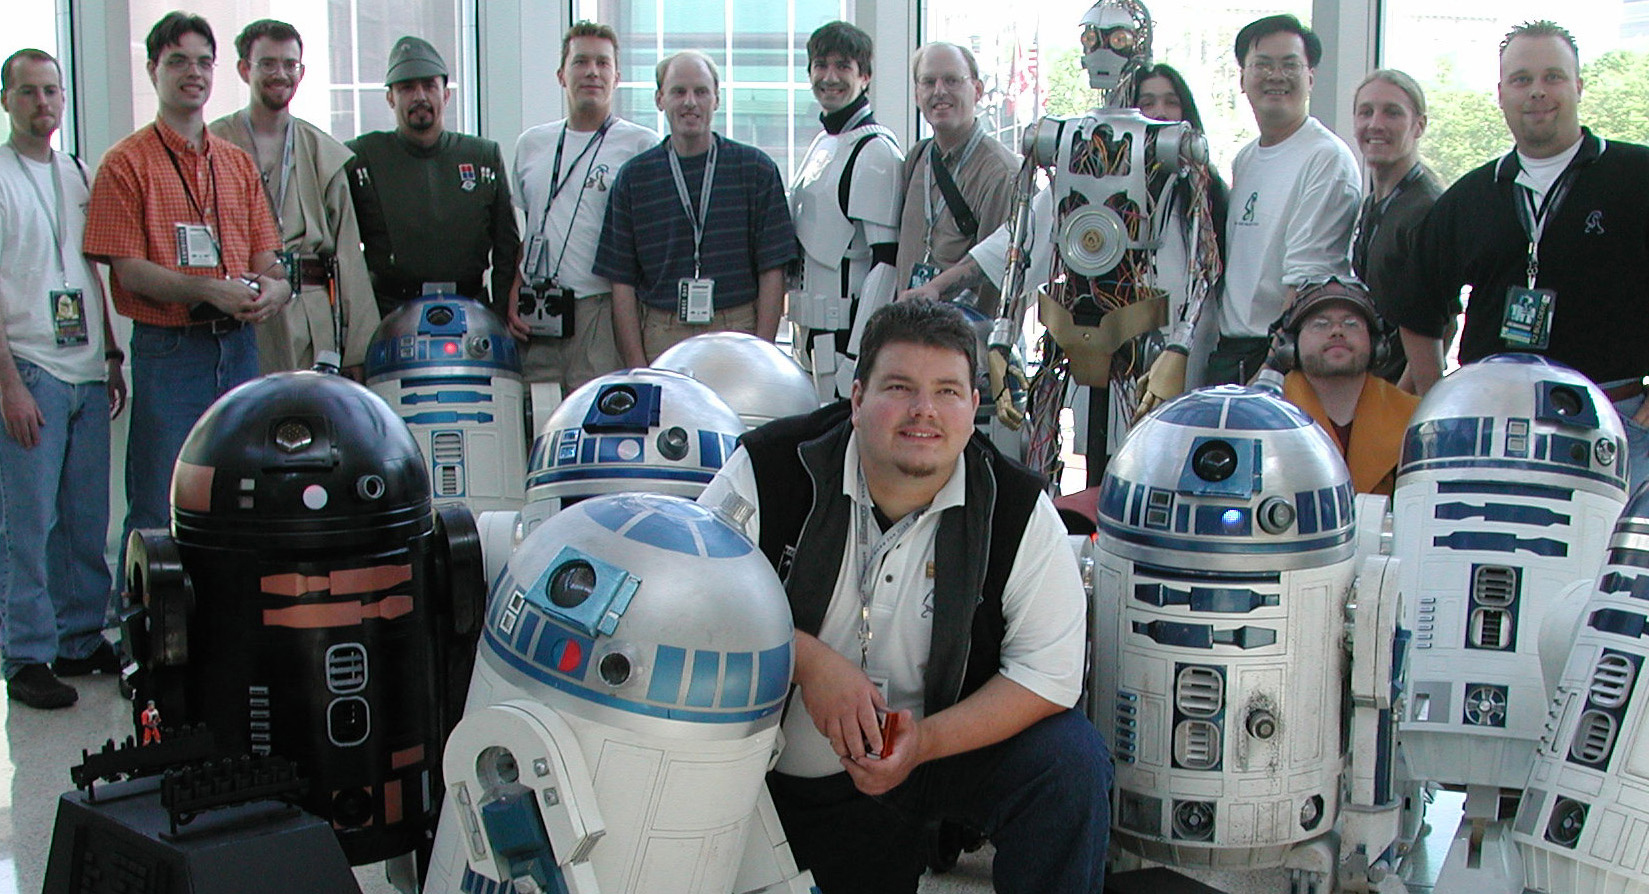 The R2-D2 Builders' Group, at the forefront of fan involvement in the Celebrations, requested space for a special display room. They outdid themselves with educational exhibits and panels on how to build accurate droids on a budget. They set the standard for fan-designed exhibiting at the show. A highlight was the R2-D2 Parade, with an array of remote-controlled droids grand marshaled by Kenny Baker (R2-D2 in the Star Wars movies). Photo courtesy of Celebration II archives.